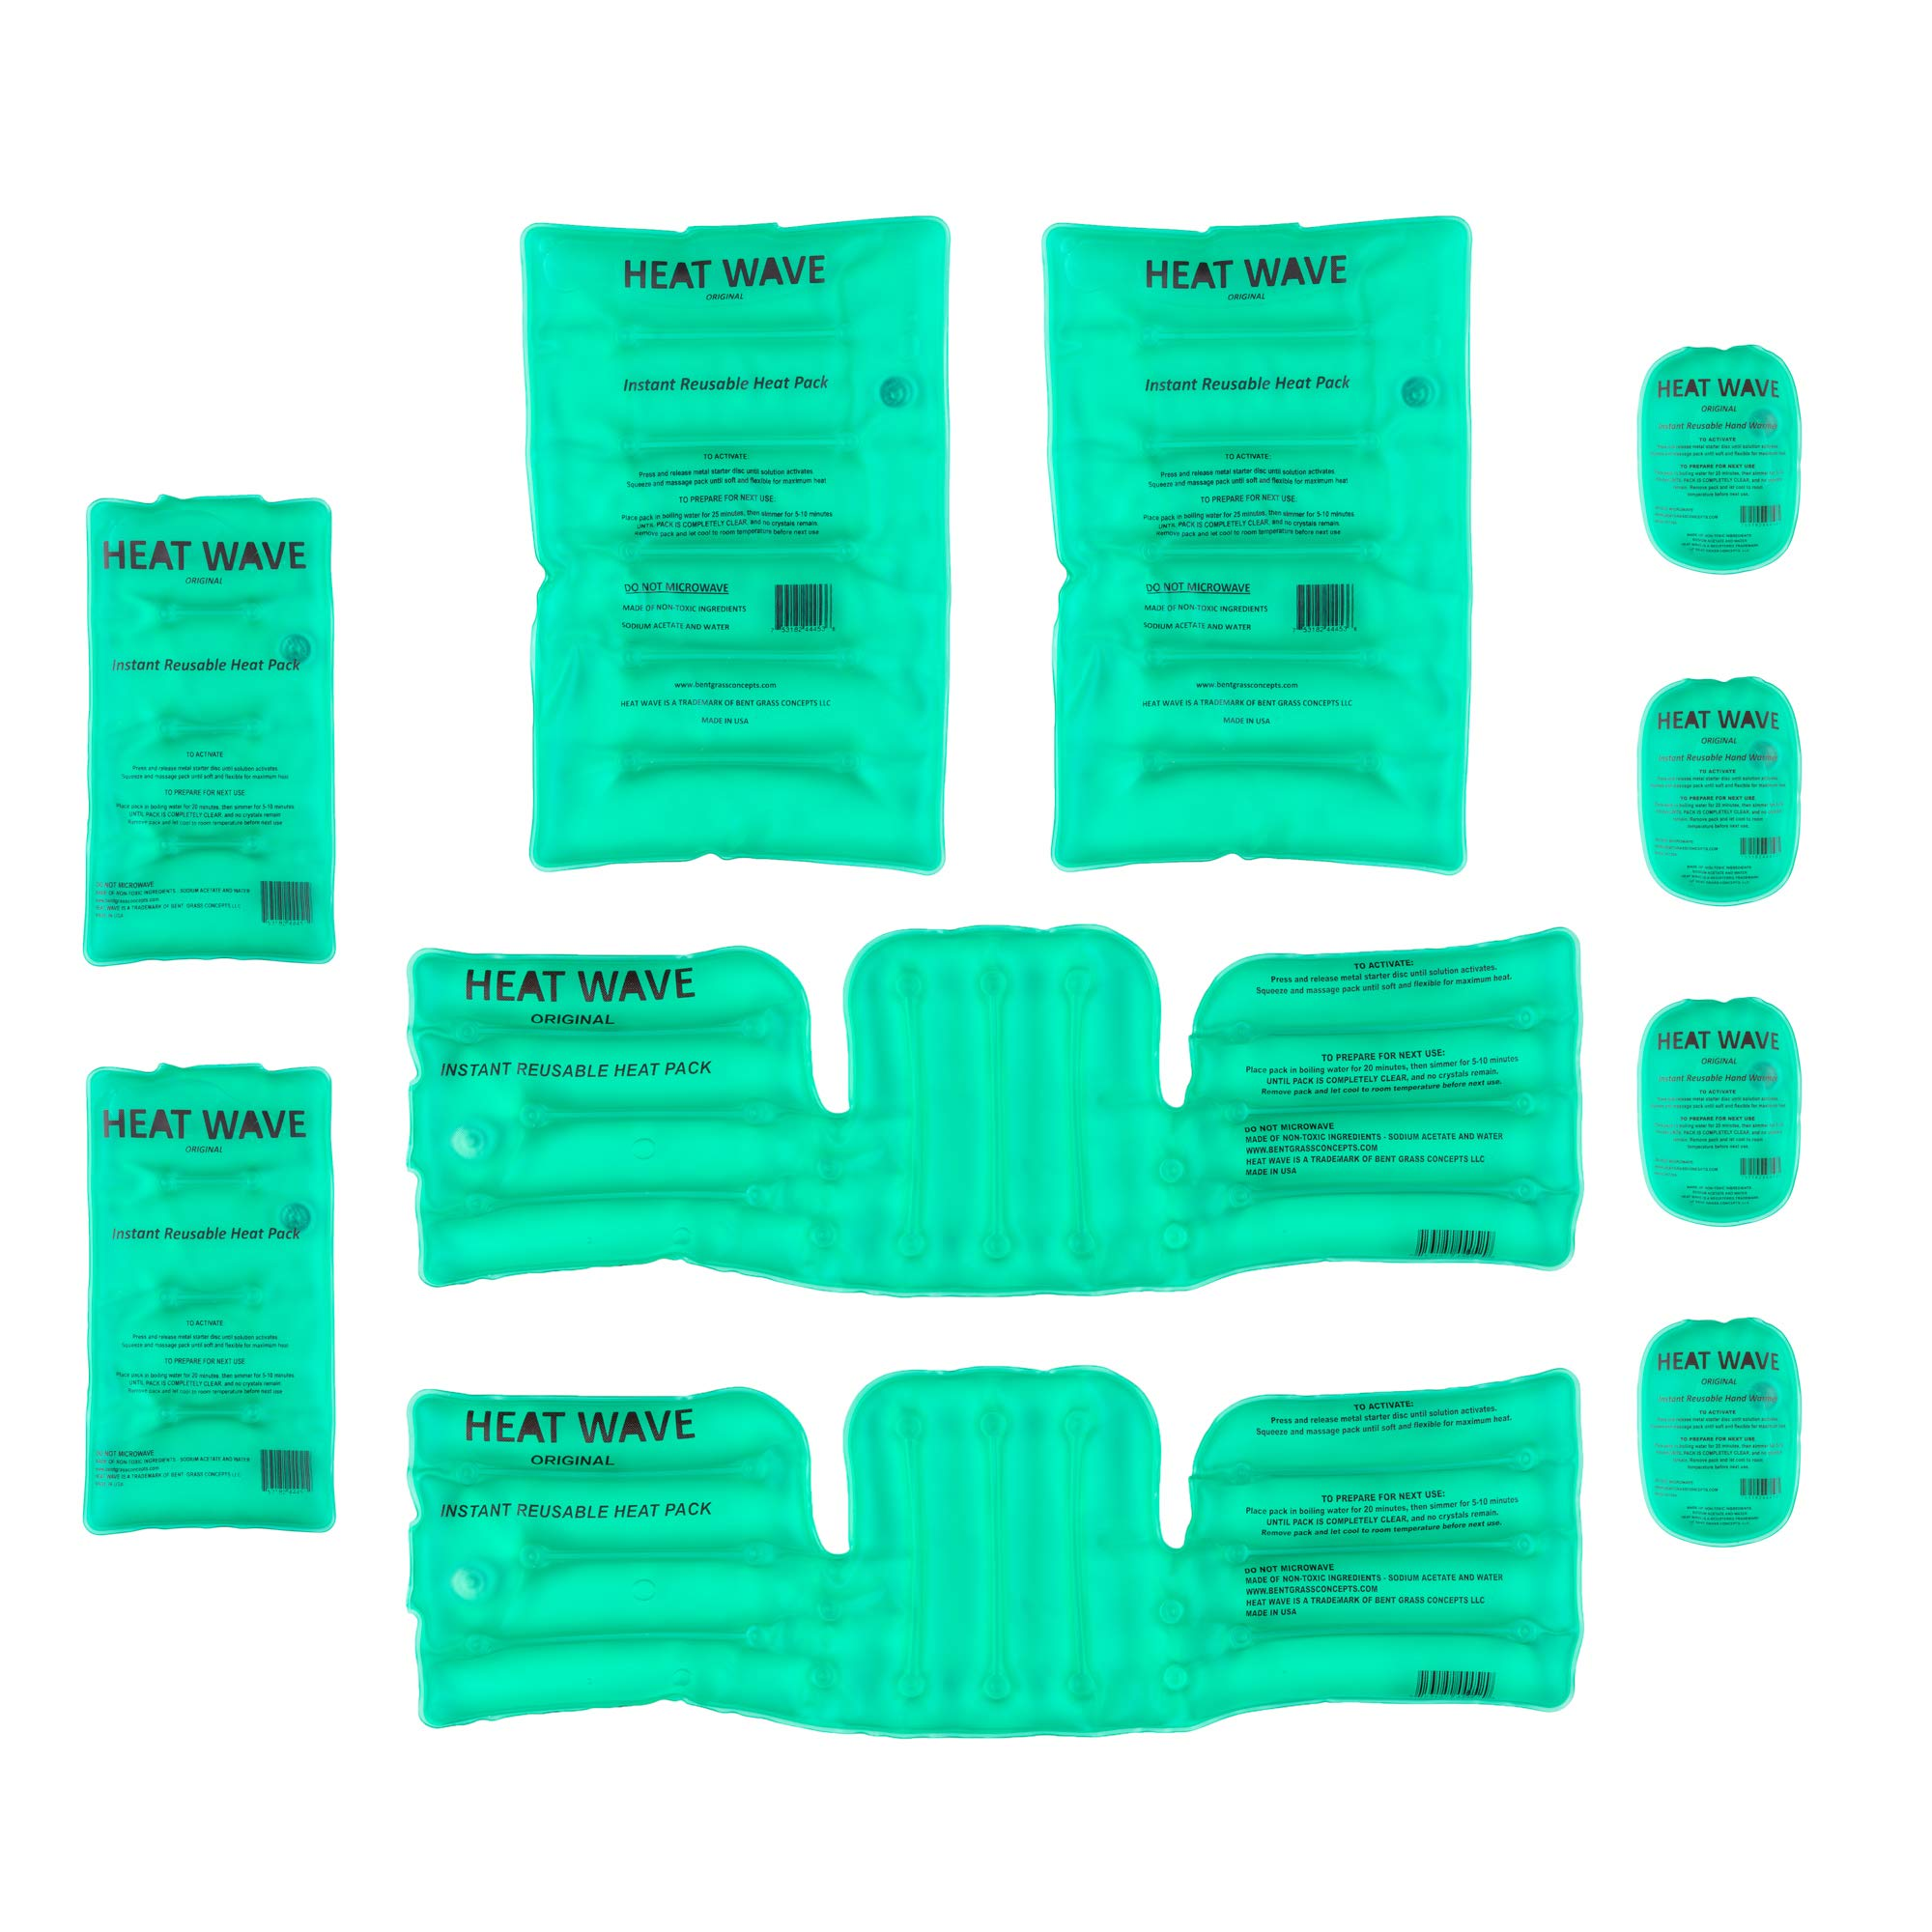 Instant Reusable Heat Packs - Bundle 4: 2 Pair (4) Hand Warmers and 2 Medium, 2 Large, and 2 Universal Neck/Shoulder/Back- Premium Quality - Medical Grade - Made in USA Heat Wave